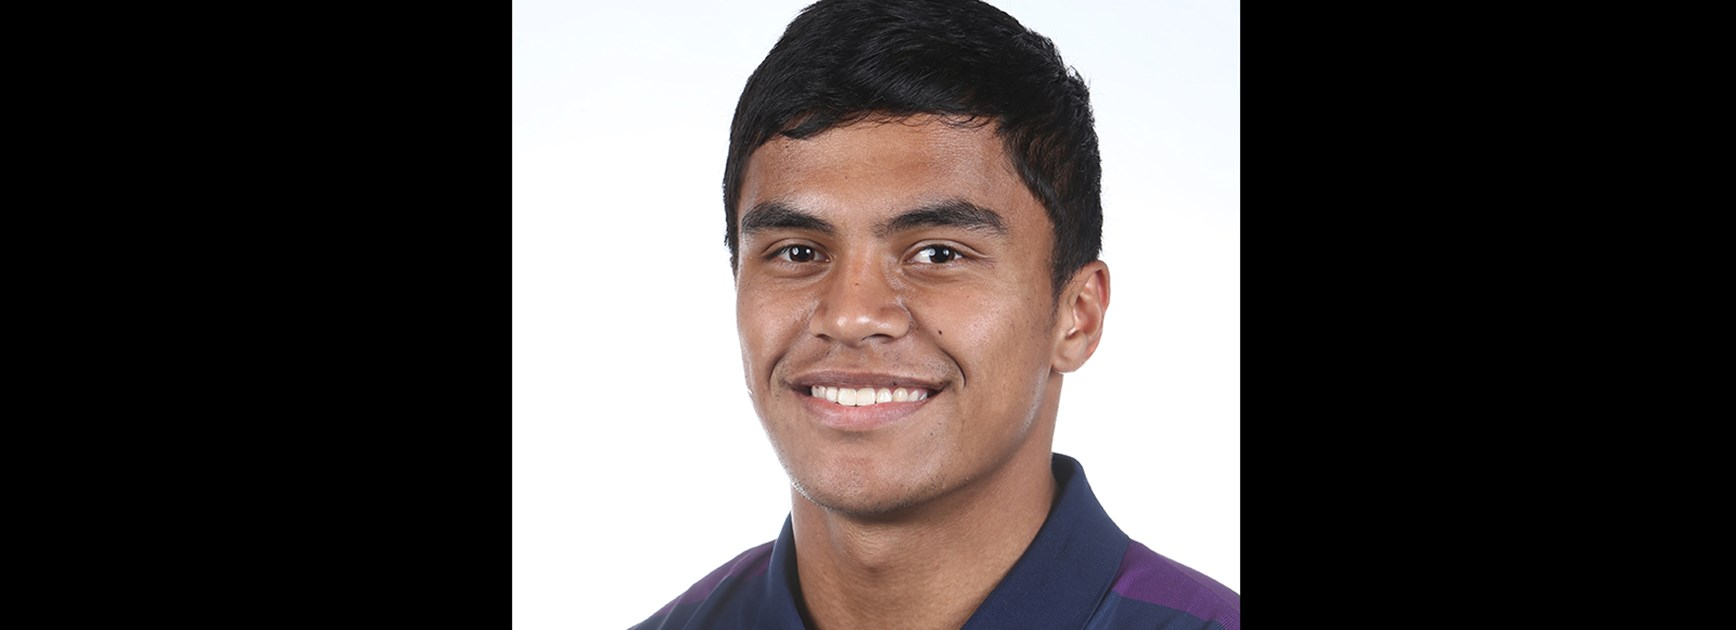 Shae Ah Fook is a Bachelor of Applied Science student at RMIT and plays for Melbourne Storm.